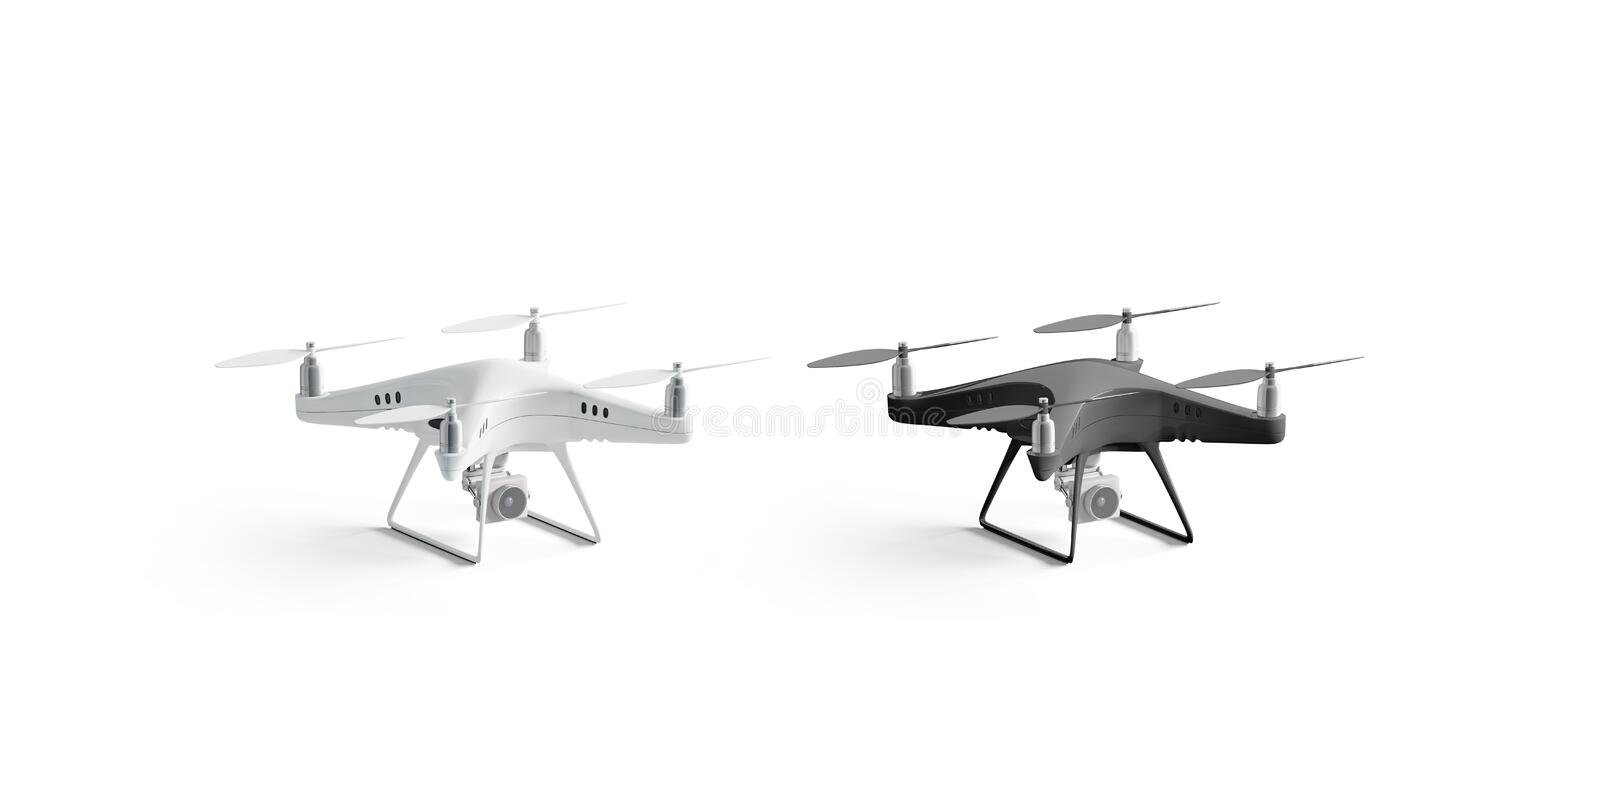 Blank black and white quadrocopter mockup set, stand isolated, vector illustration